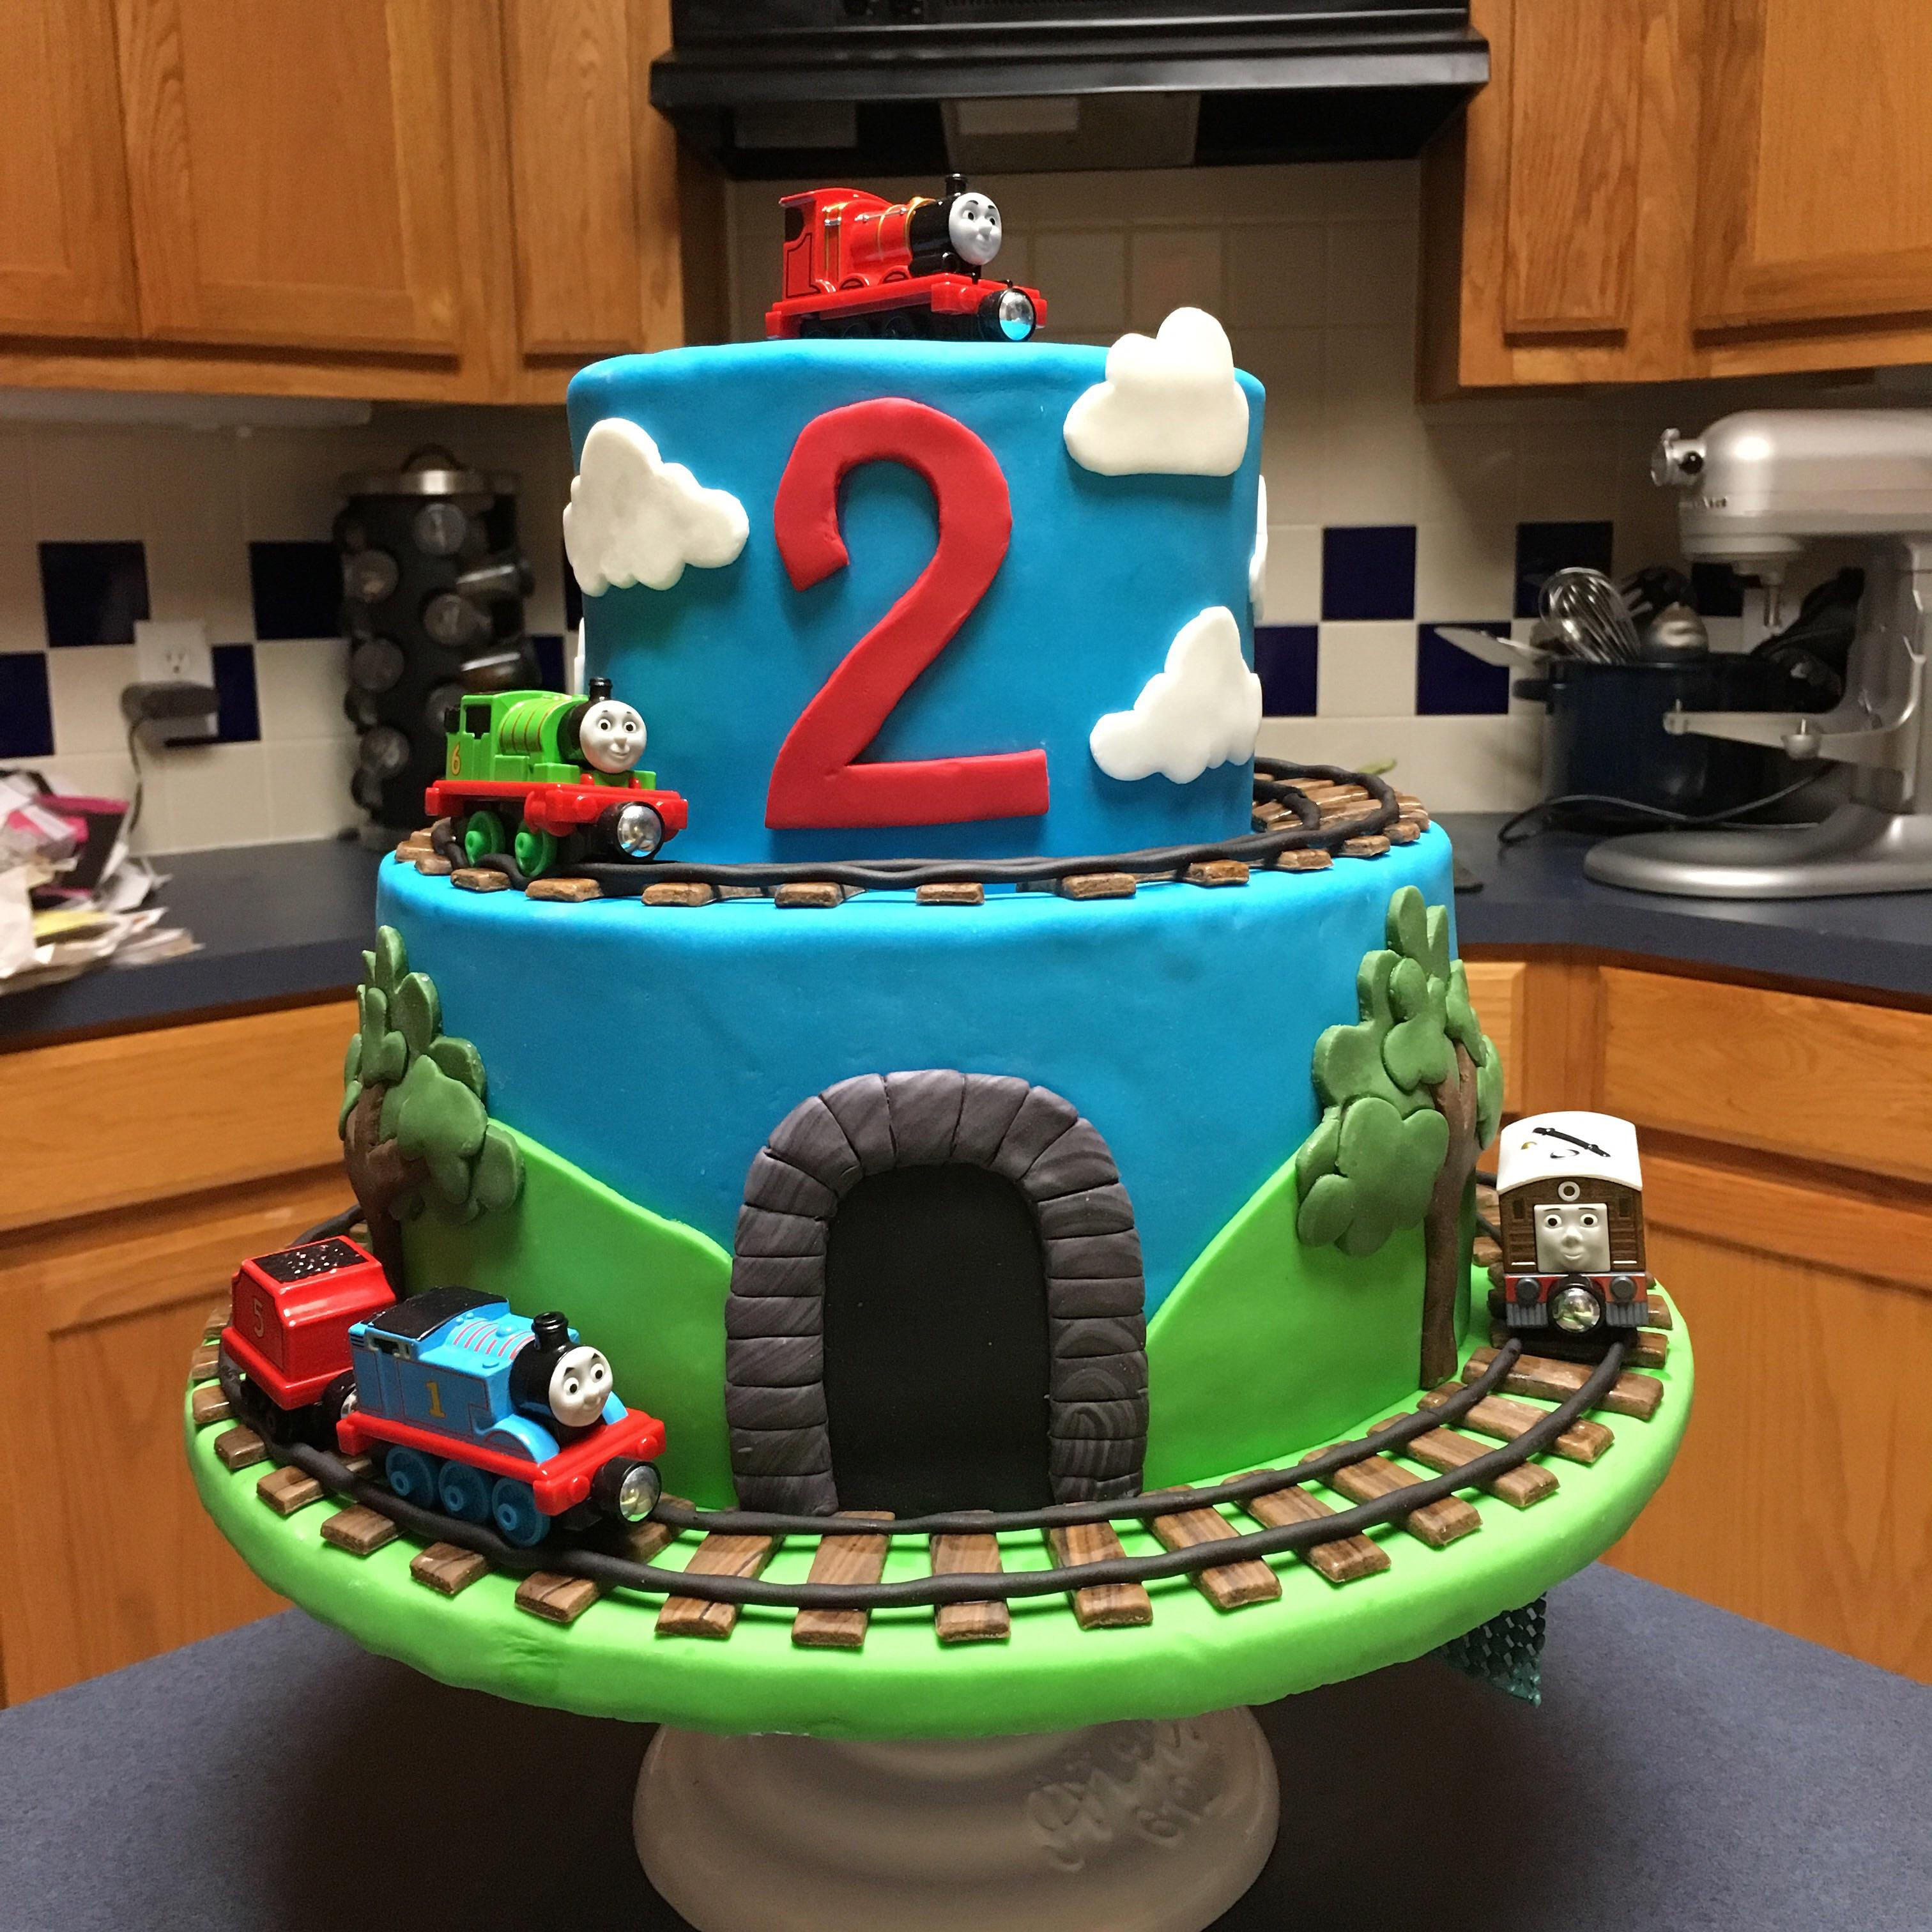 Thomas The Train Cake I Made For My Son S 2nd Birthday Baking